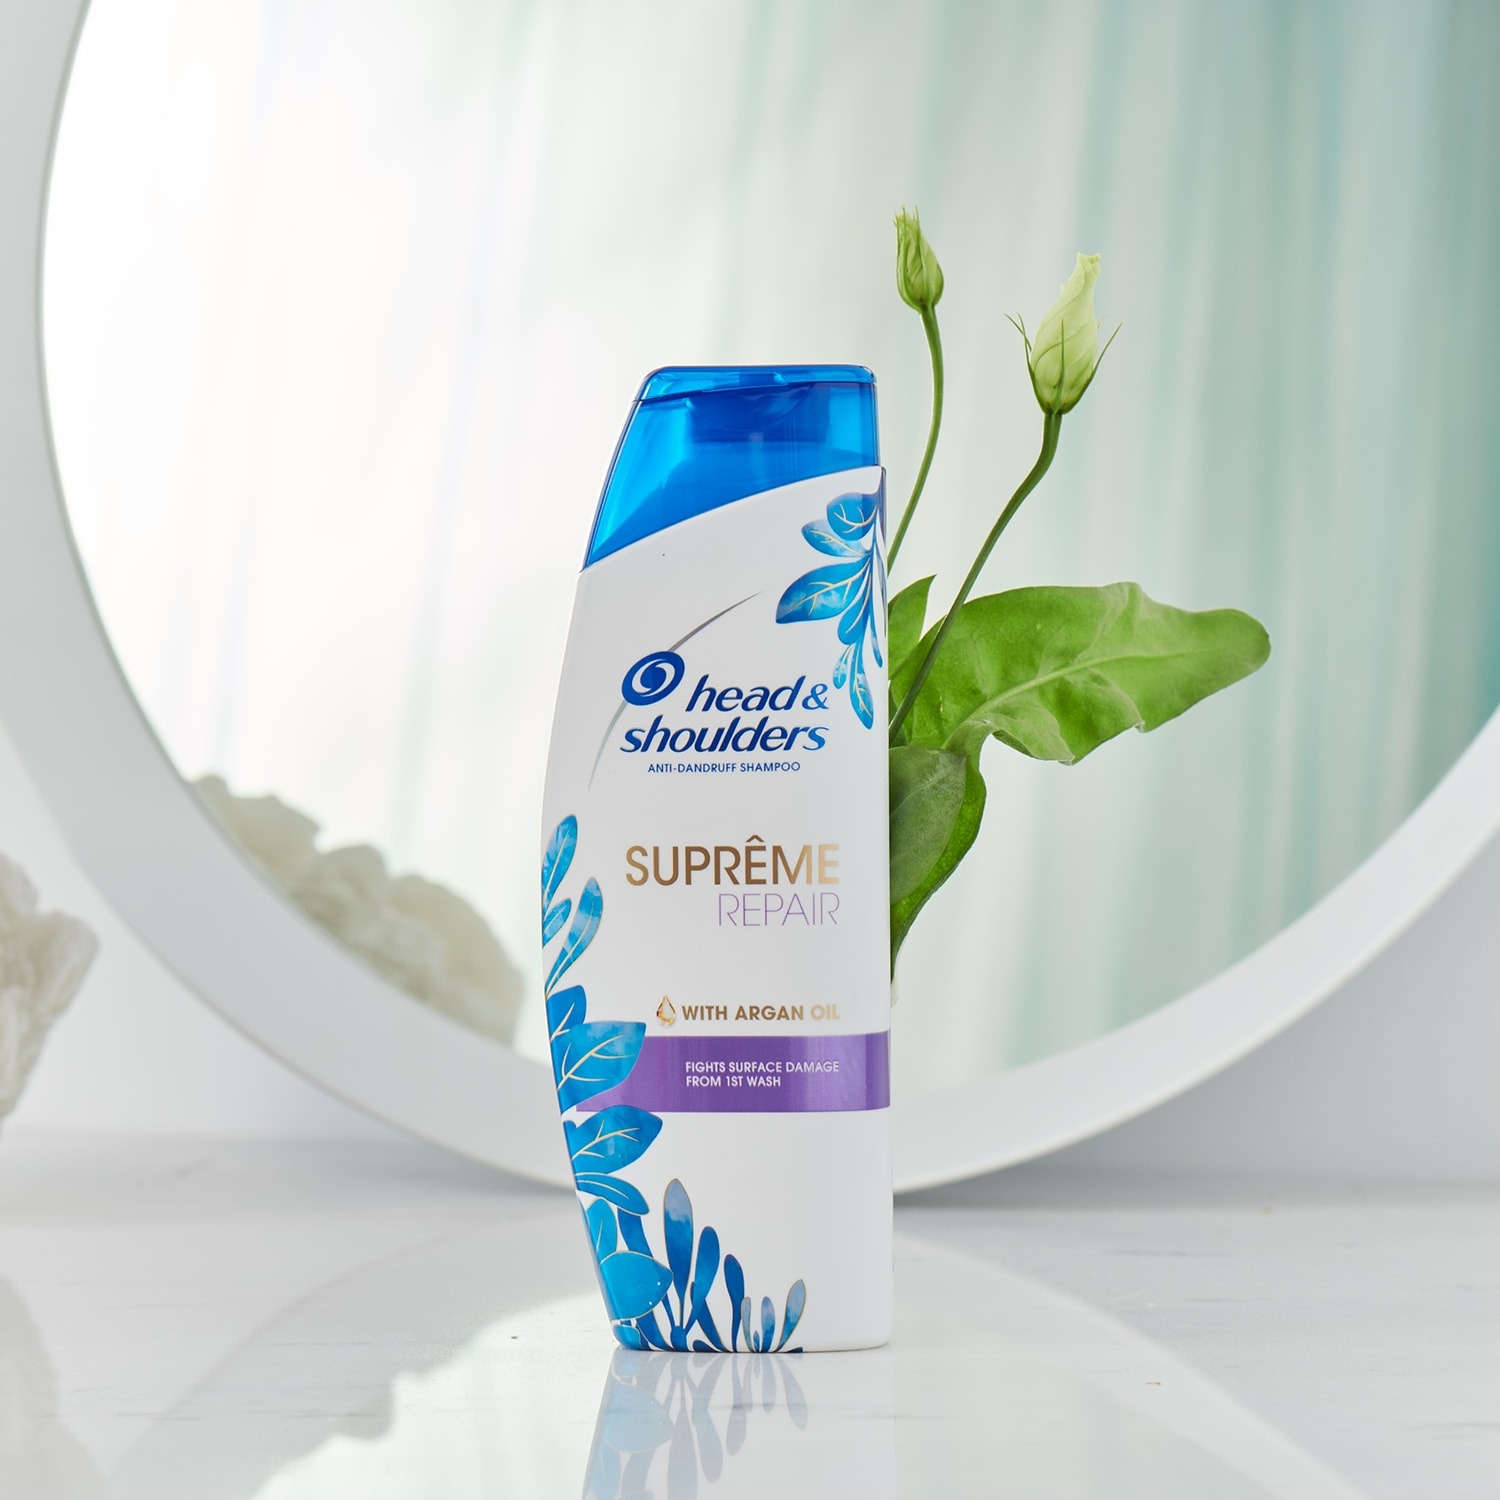 Sampon Head & Shoulders Supreme Repair matreata tratament matreata antimatreata tratament antimatreata scapa de materana cum scapi de matreata cum scap de matreata sampon antimatreata sampon matreata cum scapam de matreata par frumos Head & Shoulders